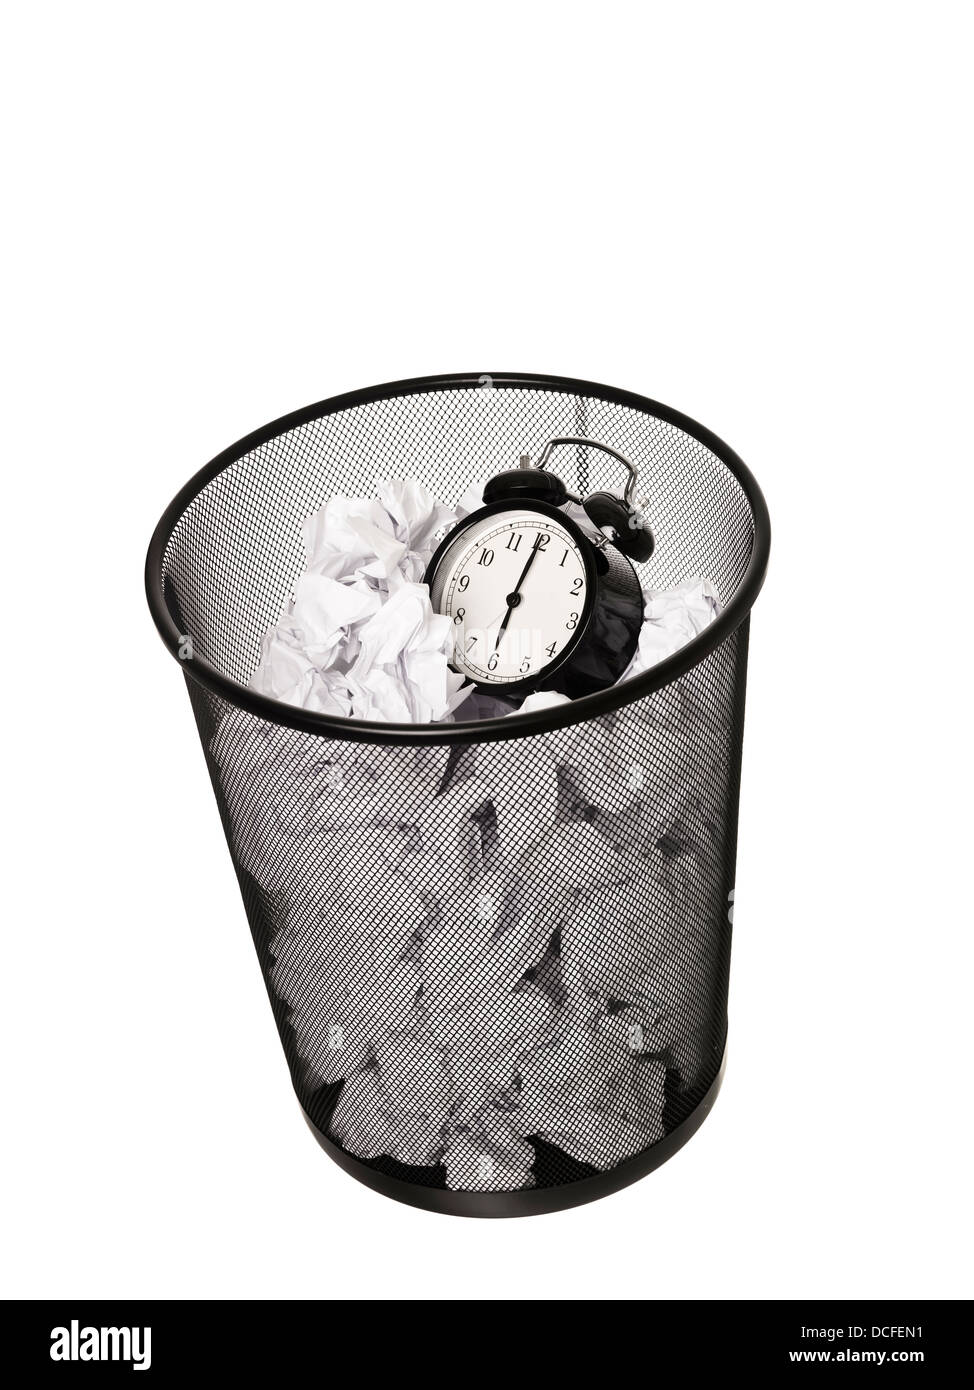 Wasting Time - Stock Image